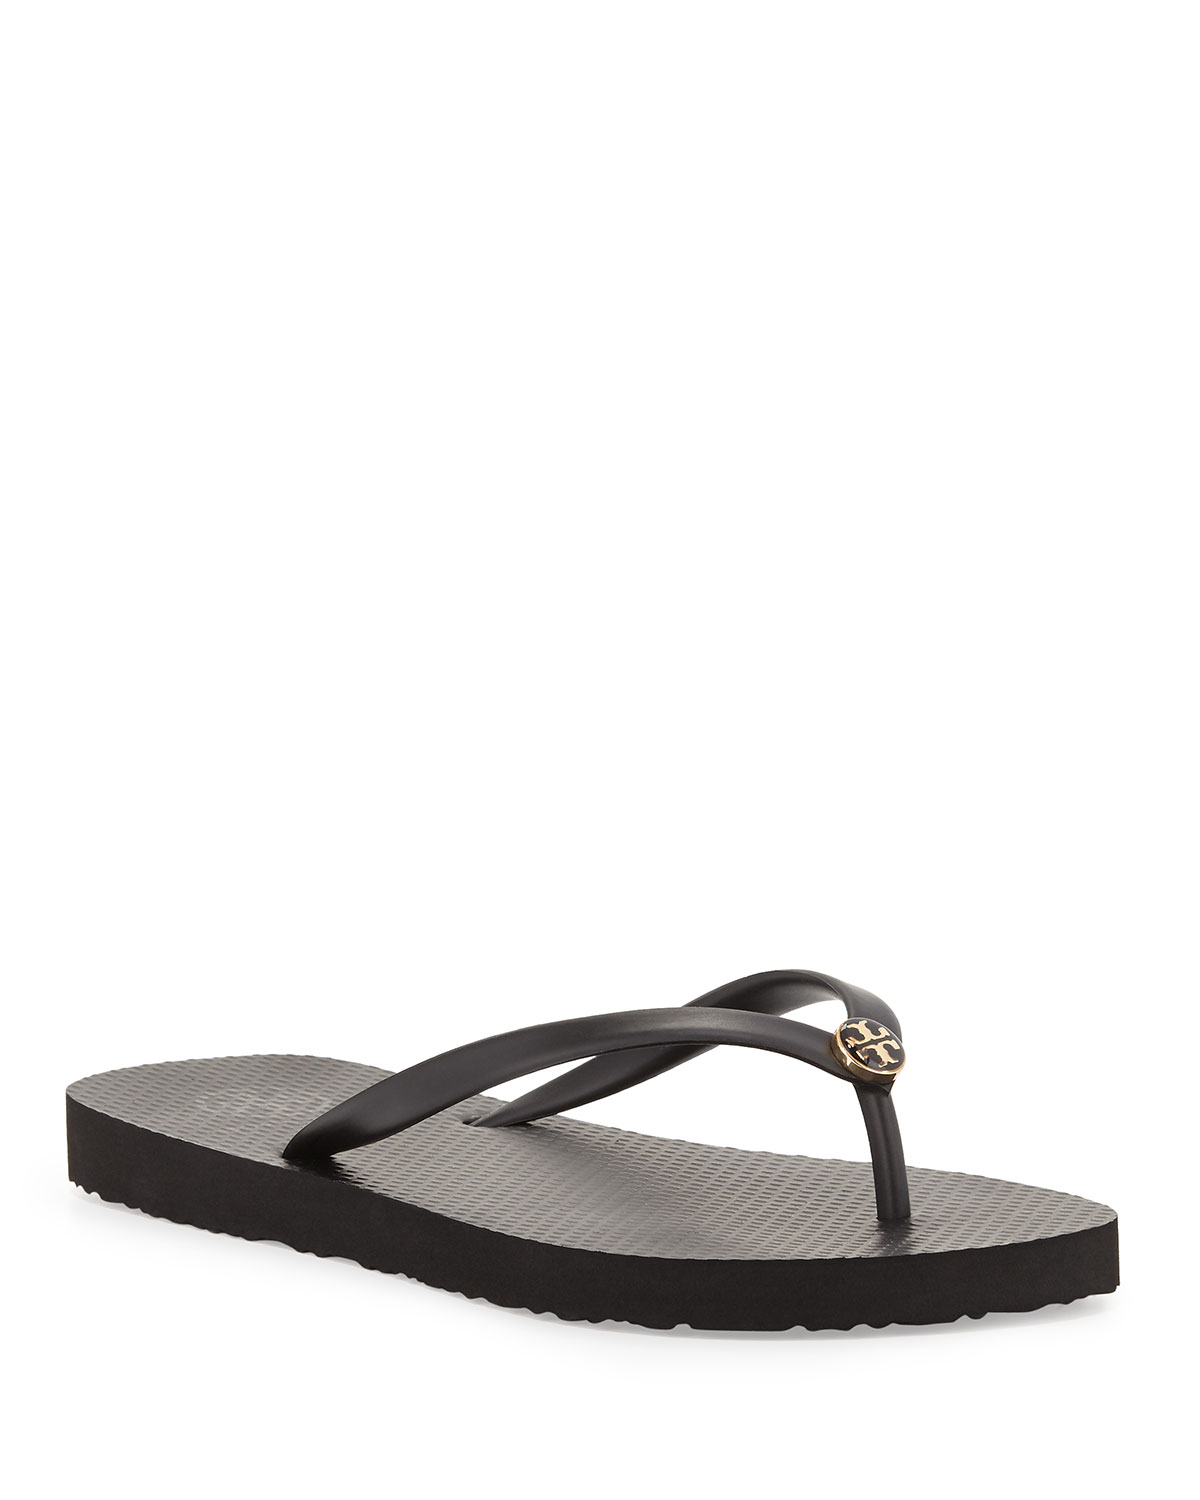 26fc0b04d19a77 Quick Look. Tory Burch · Logo Rubber Flip-Flop. Available in Black